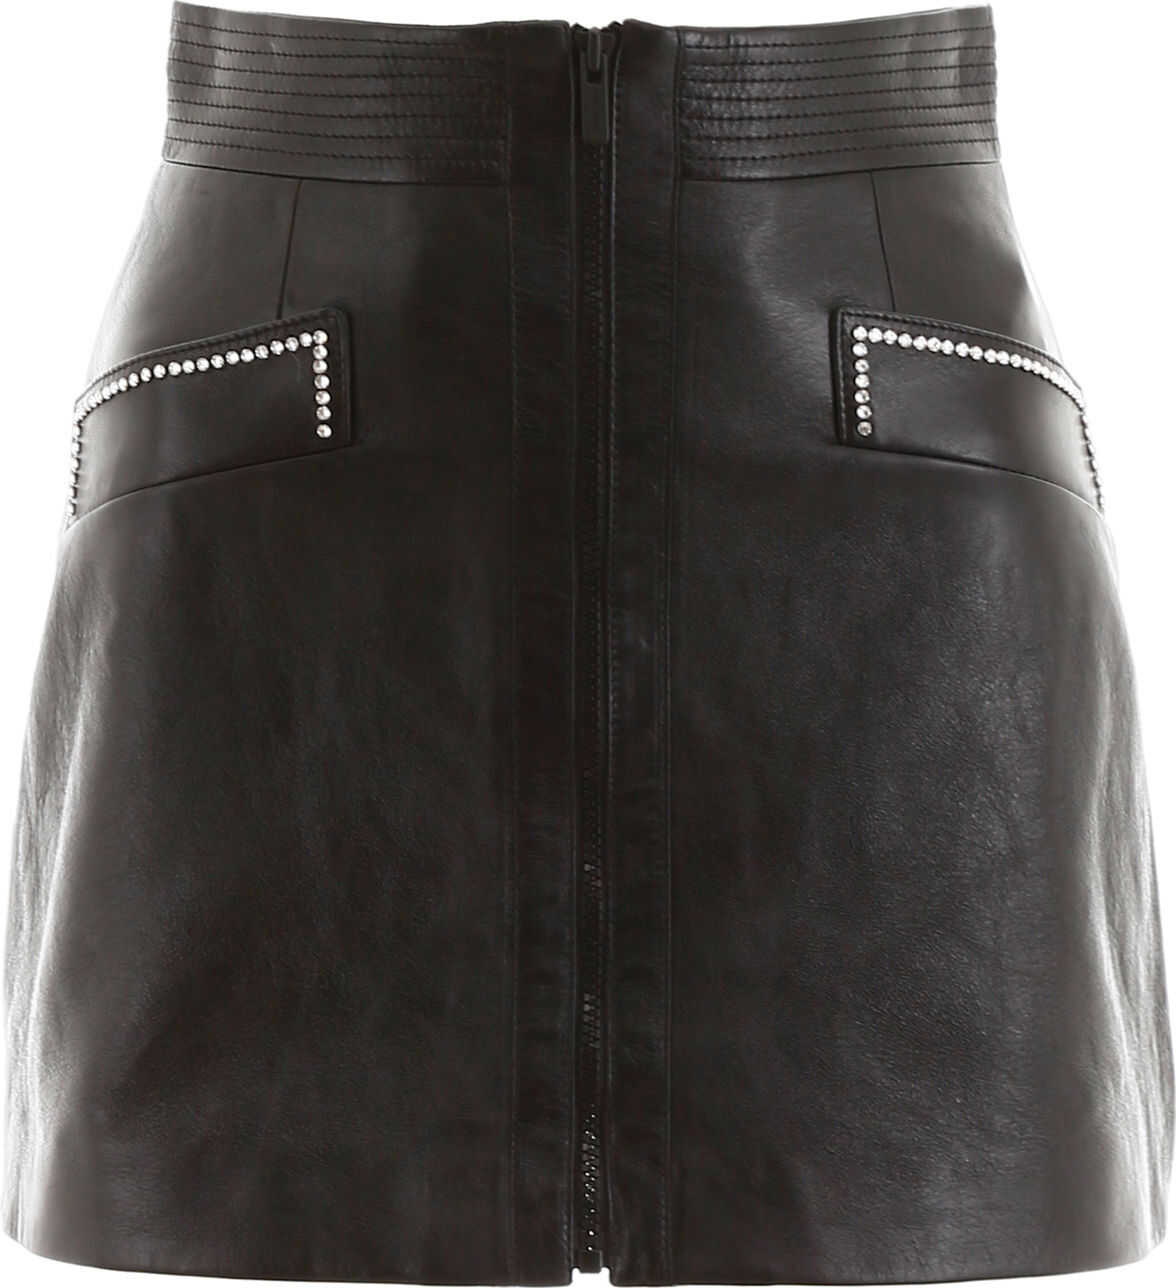 Miu Miu Leather Mini Skirt With Crystals NERO